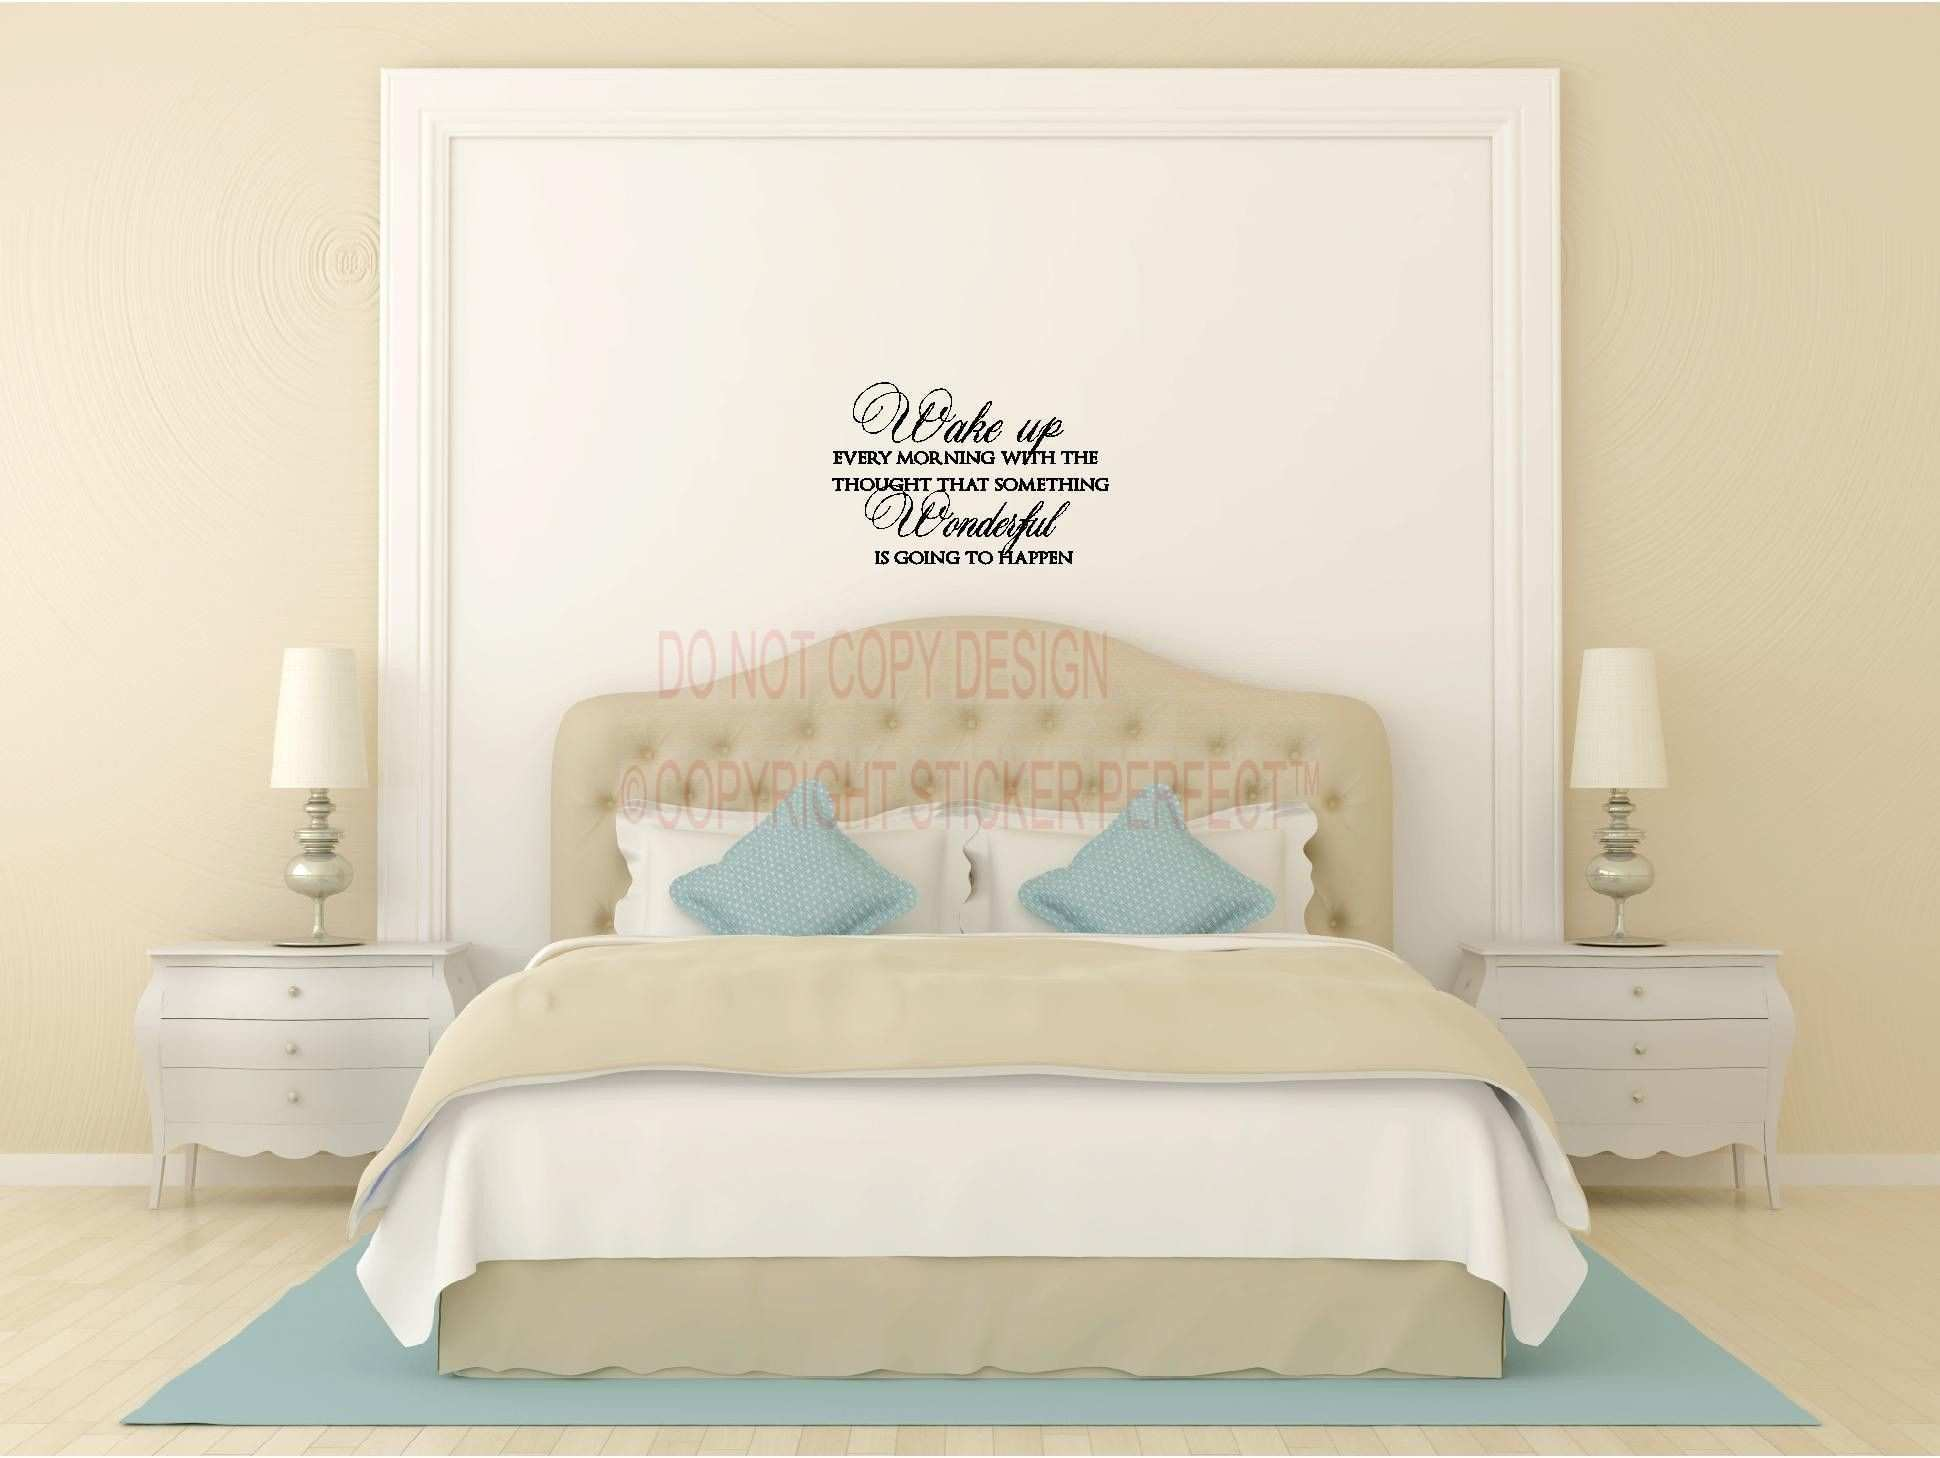 Wall Sayings New 2 Wake Up Every Morning with the thought that something Wonderful is